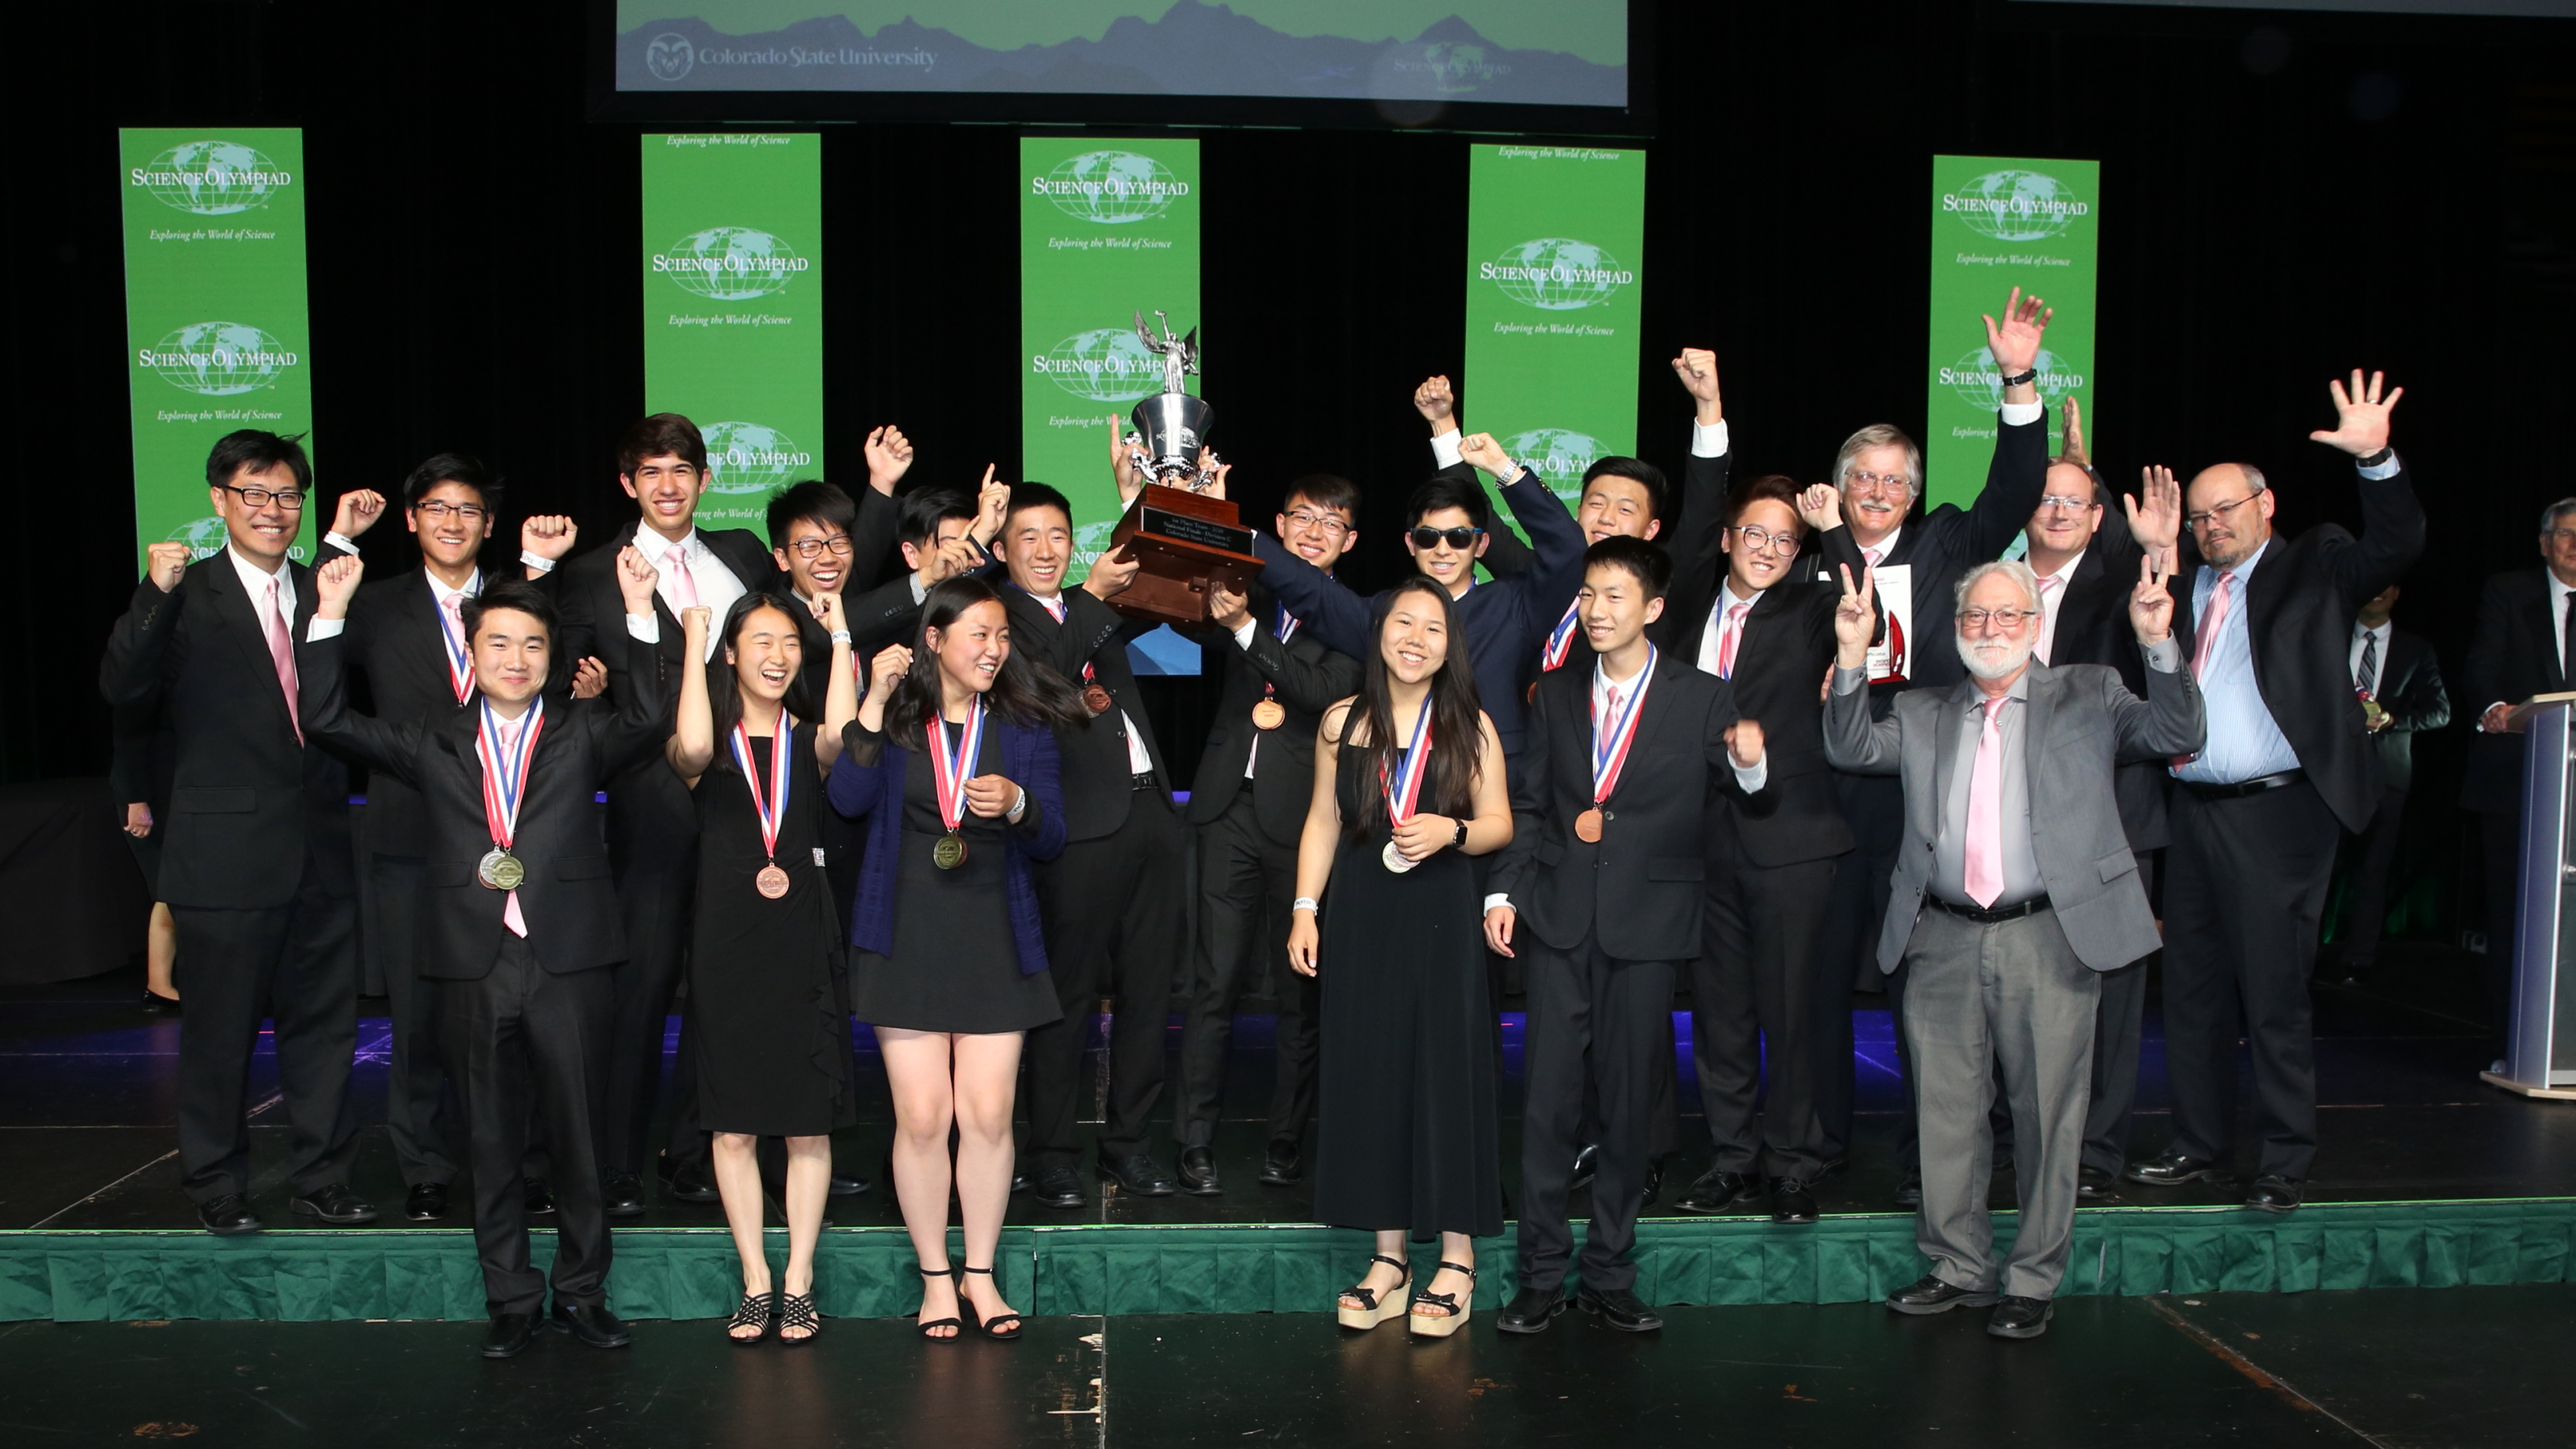 Troy High School wins the 2018 Science Olympiad National Tournament Division C title at Colorado State University